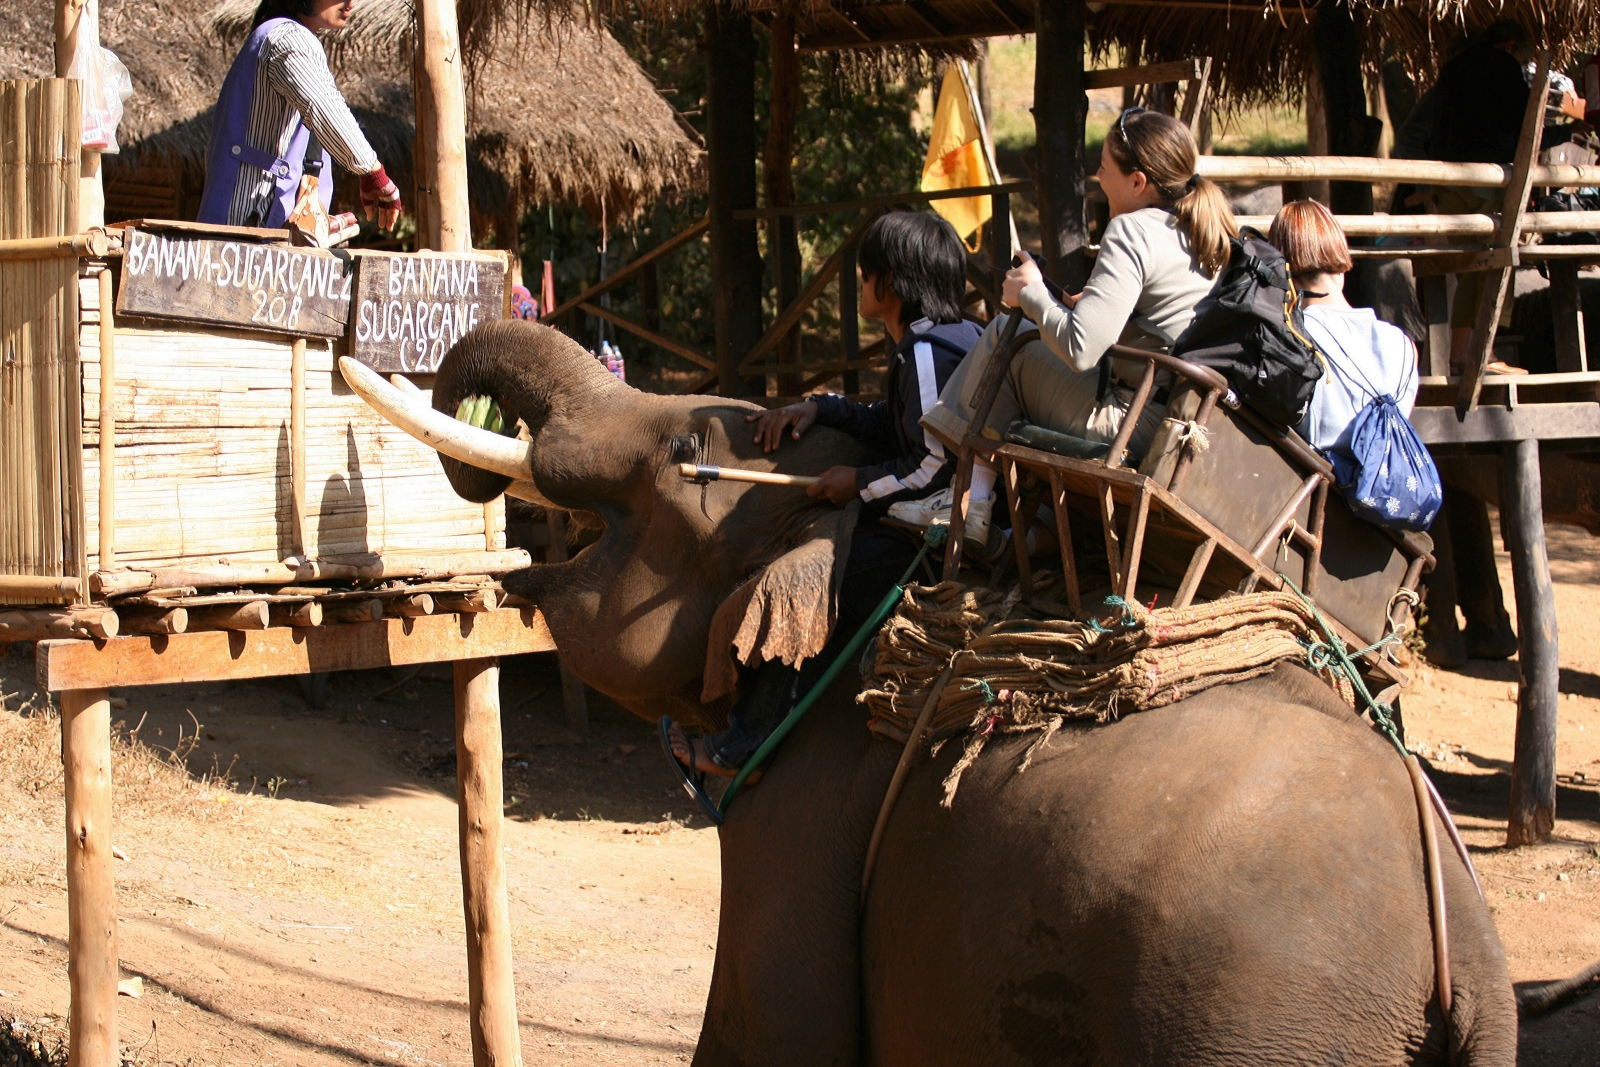 An elephant carrying tourists